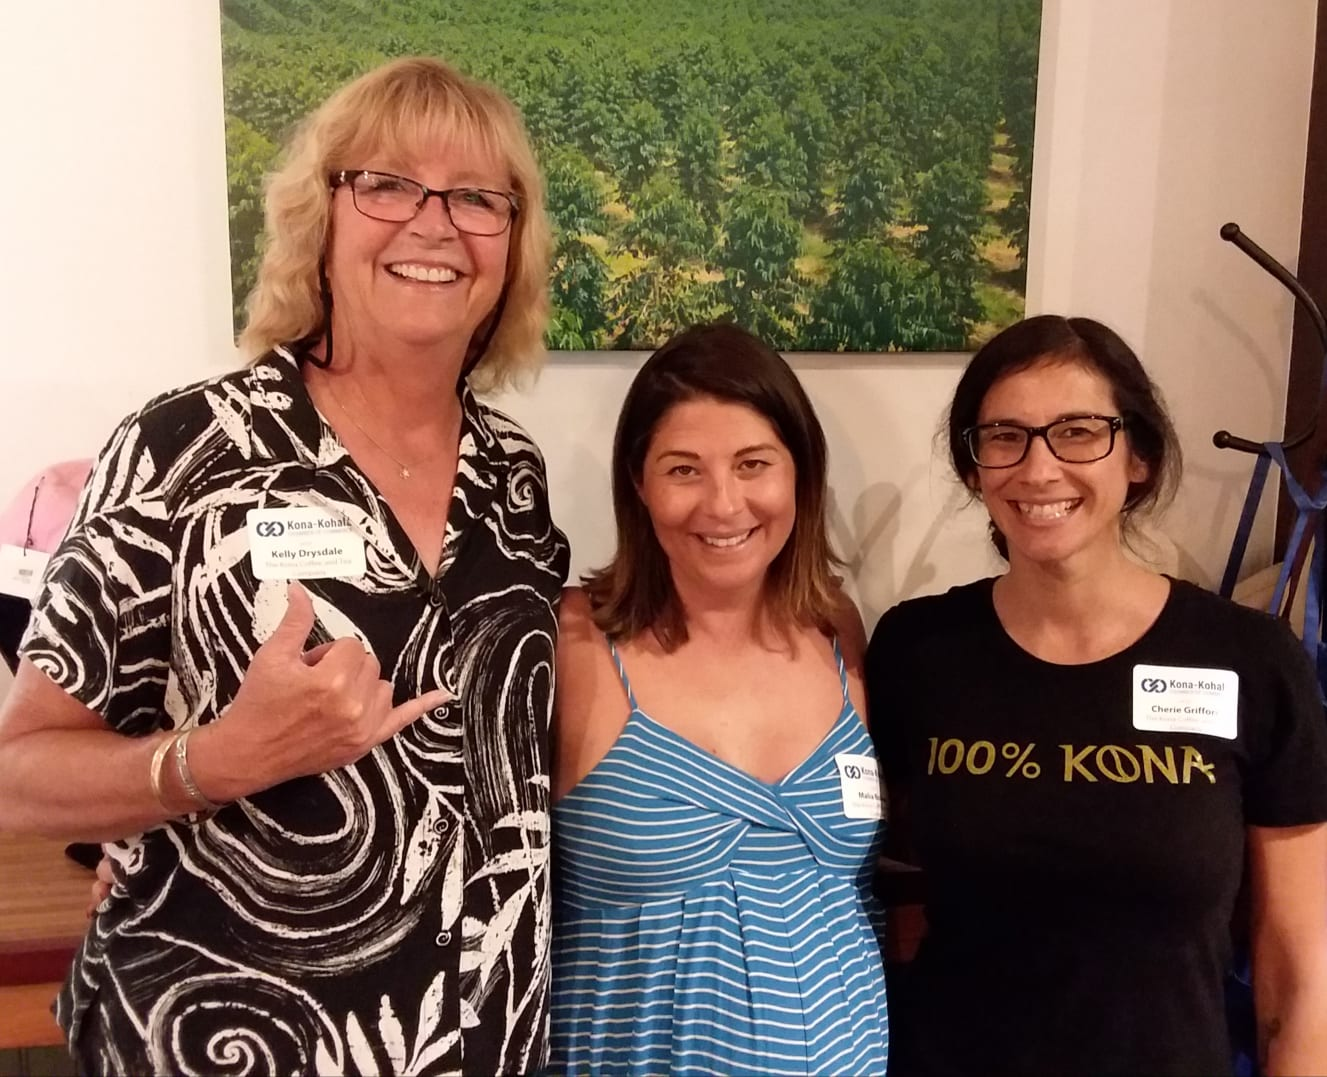 Grounds for Celebration at the May AfterHours for Kona Coffee & Tea